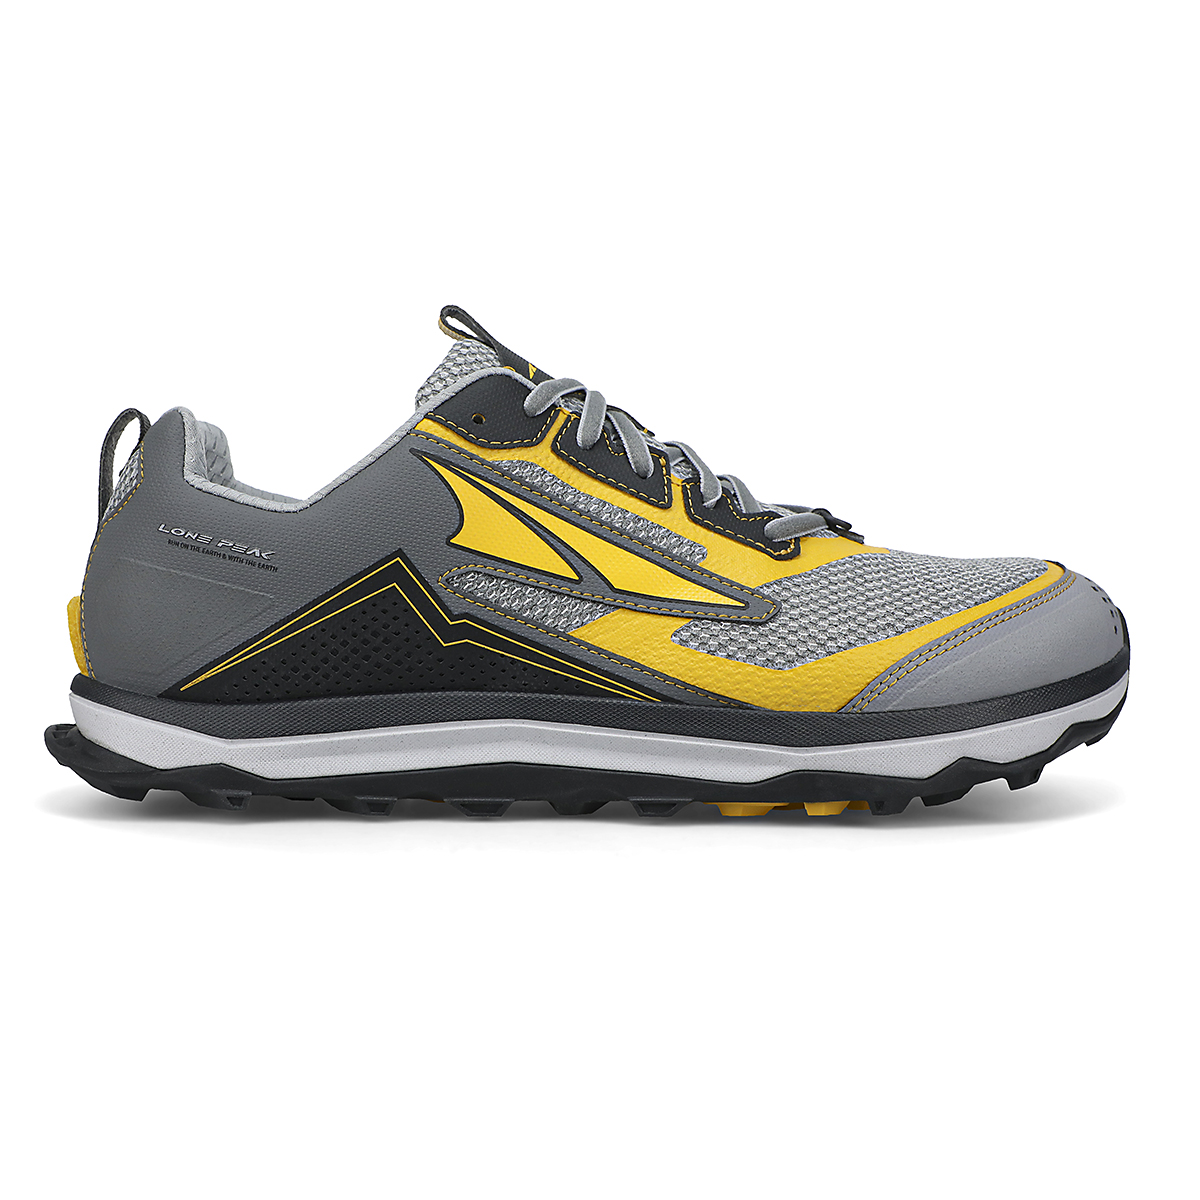 Men's Altra Lone Peak 5 10th Anniversary Special Edition Trail Running Shoe - Color: Gray/Yellow - Size: 8 - Width: Regular, Gray/Yellow, large, image 1